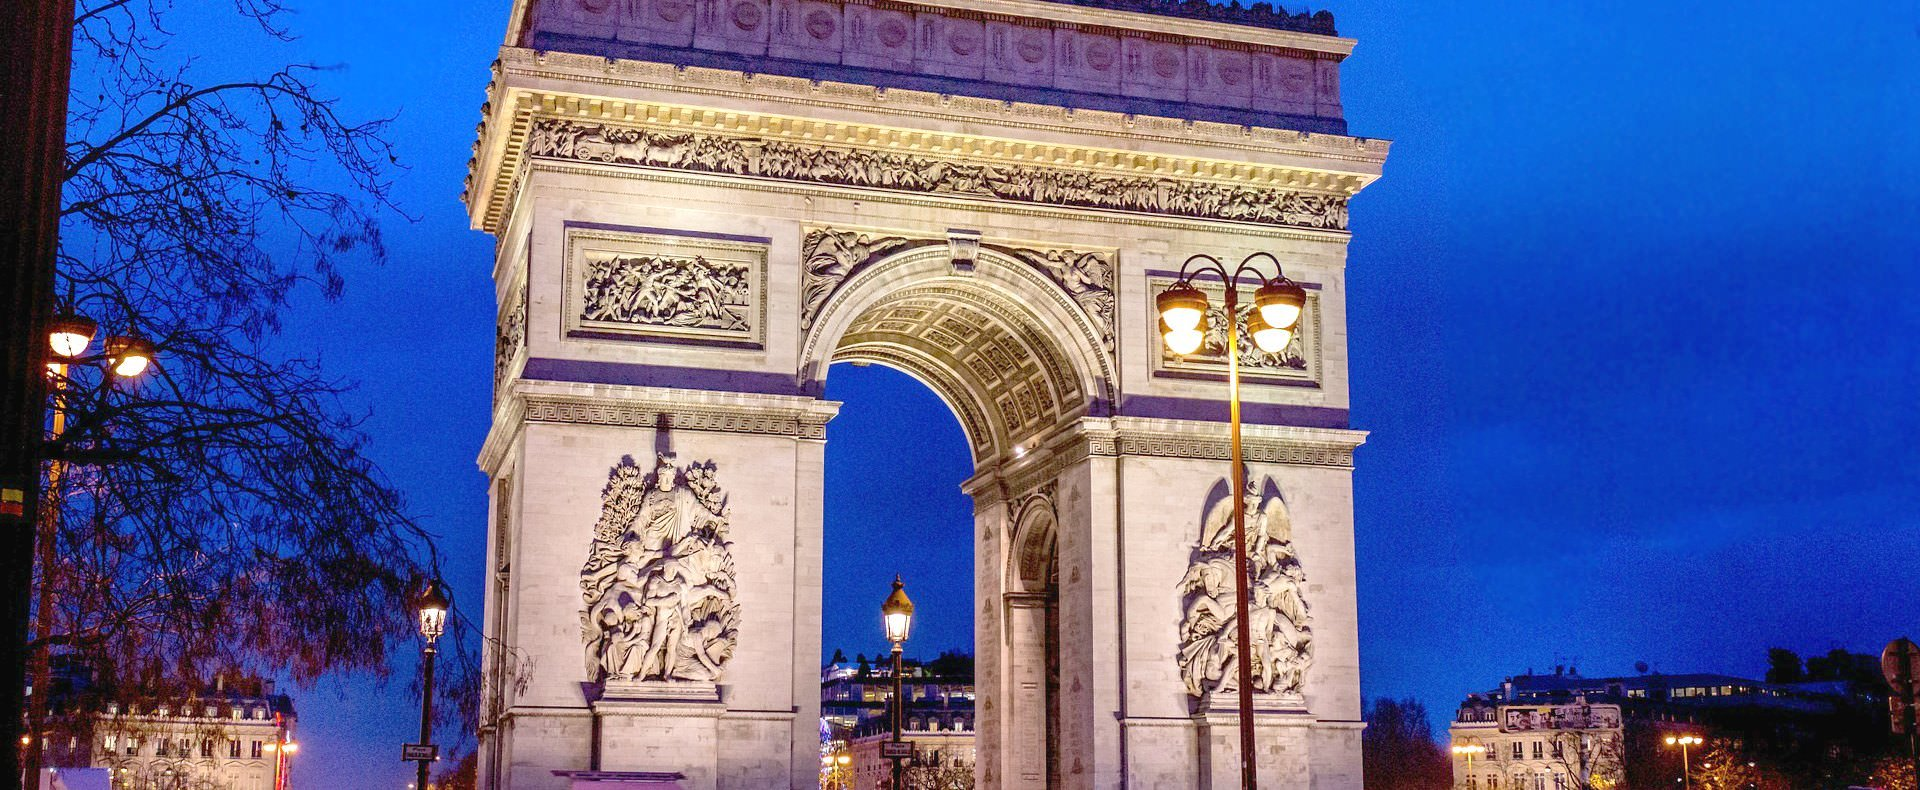 Triumphal Arc, Paris